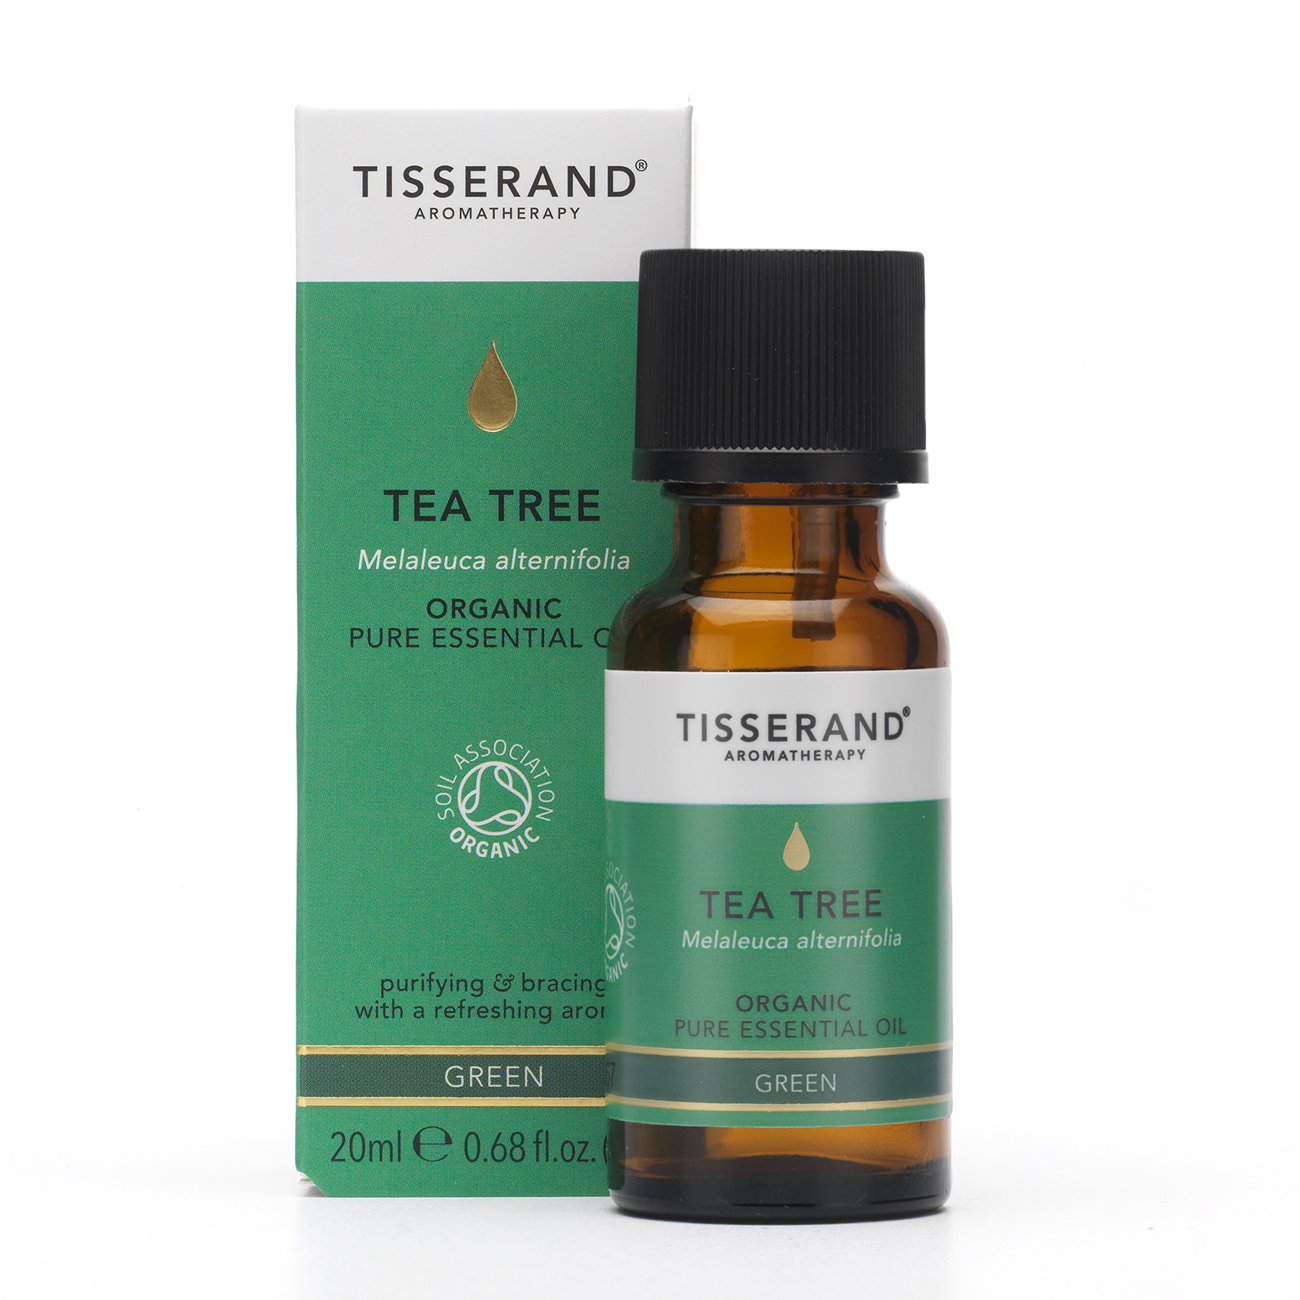 Tea Tree Oil Toepassingen Tea Tree And Aloe Lijn Tisserand